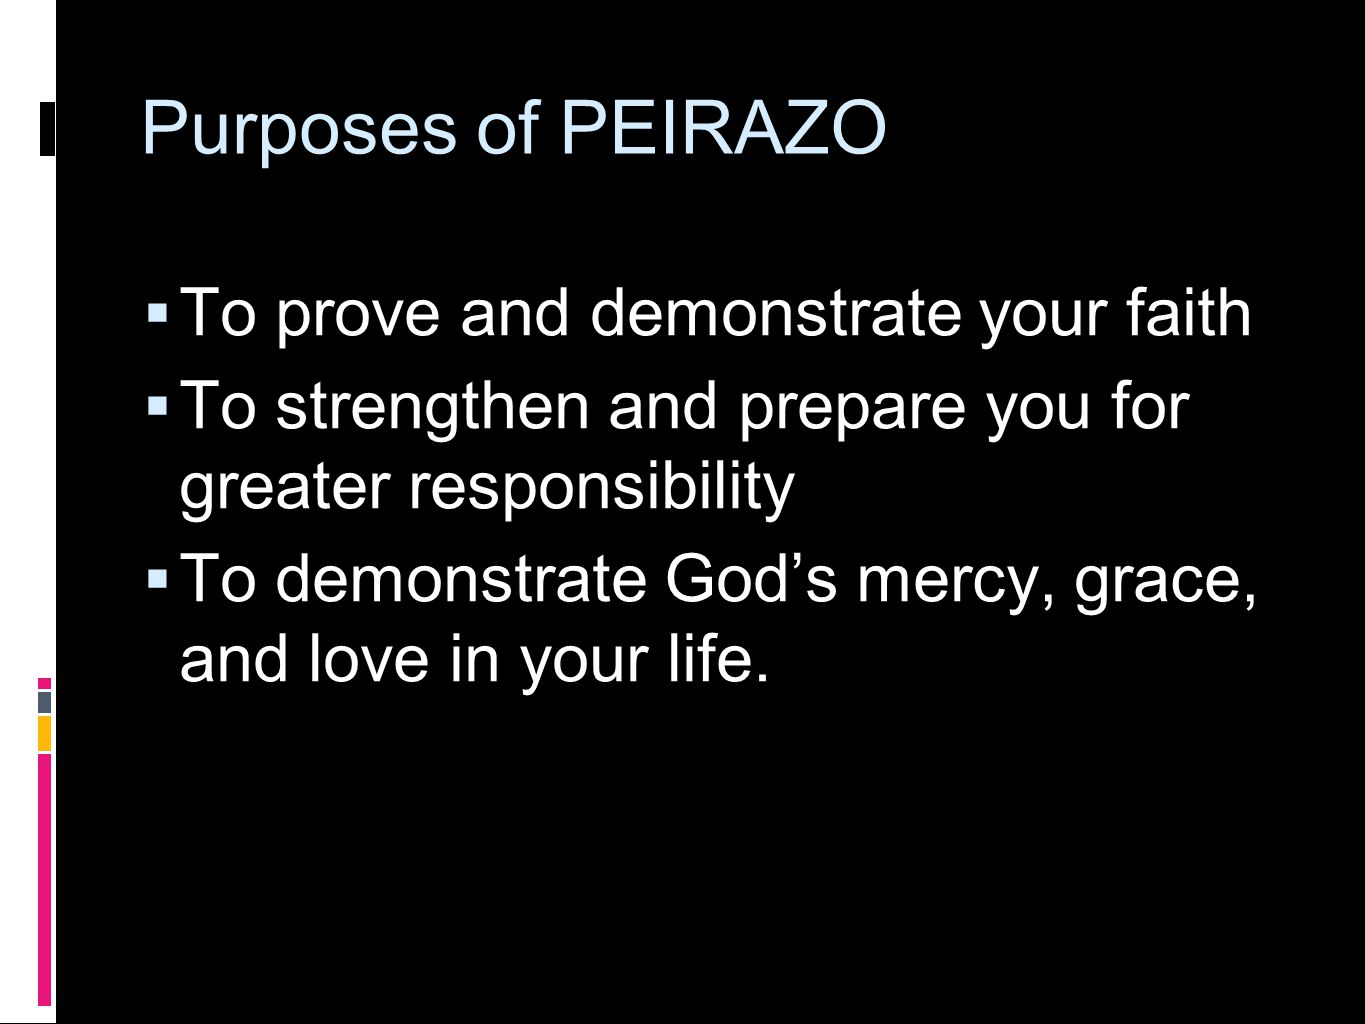 Purposes of PEIRAZO  To prove and demonstrate your faith  To strengthen and prepare you for greater responsibility  To demonstrate God's mercy, grace, and love in your life.